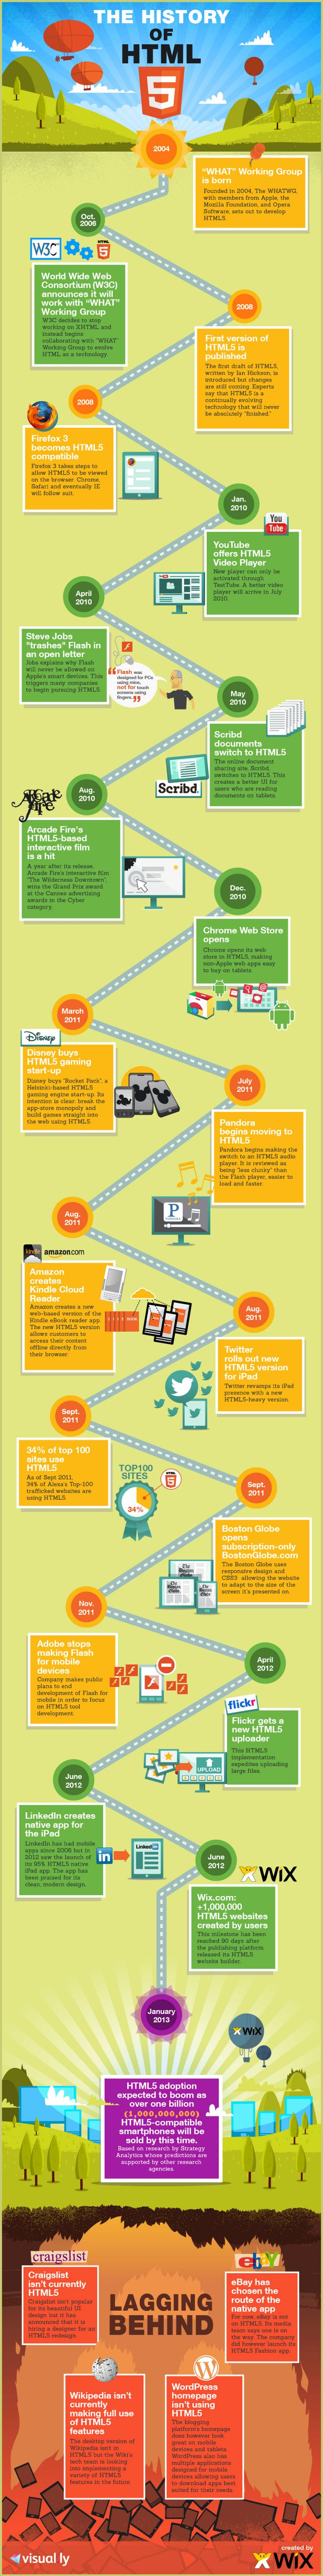 The History of HTML5 infographic will give you an insightful historical timeline